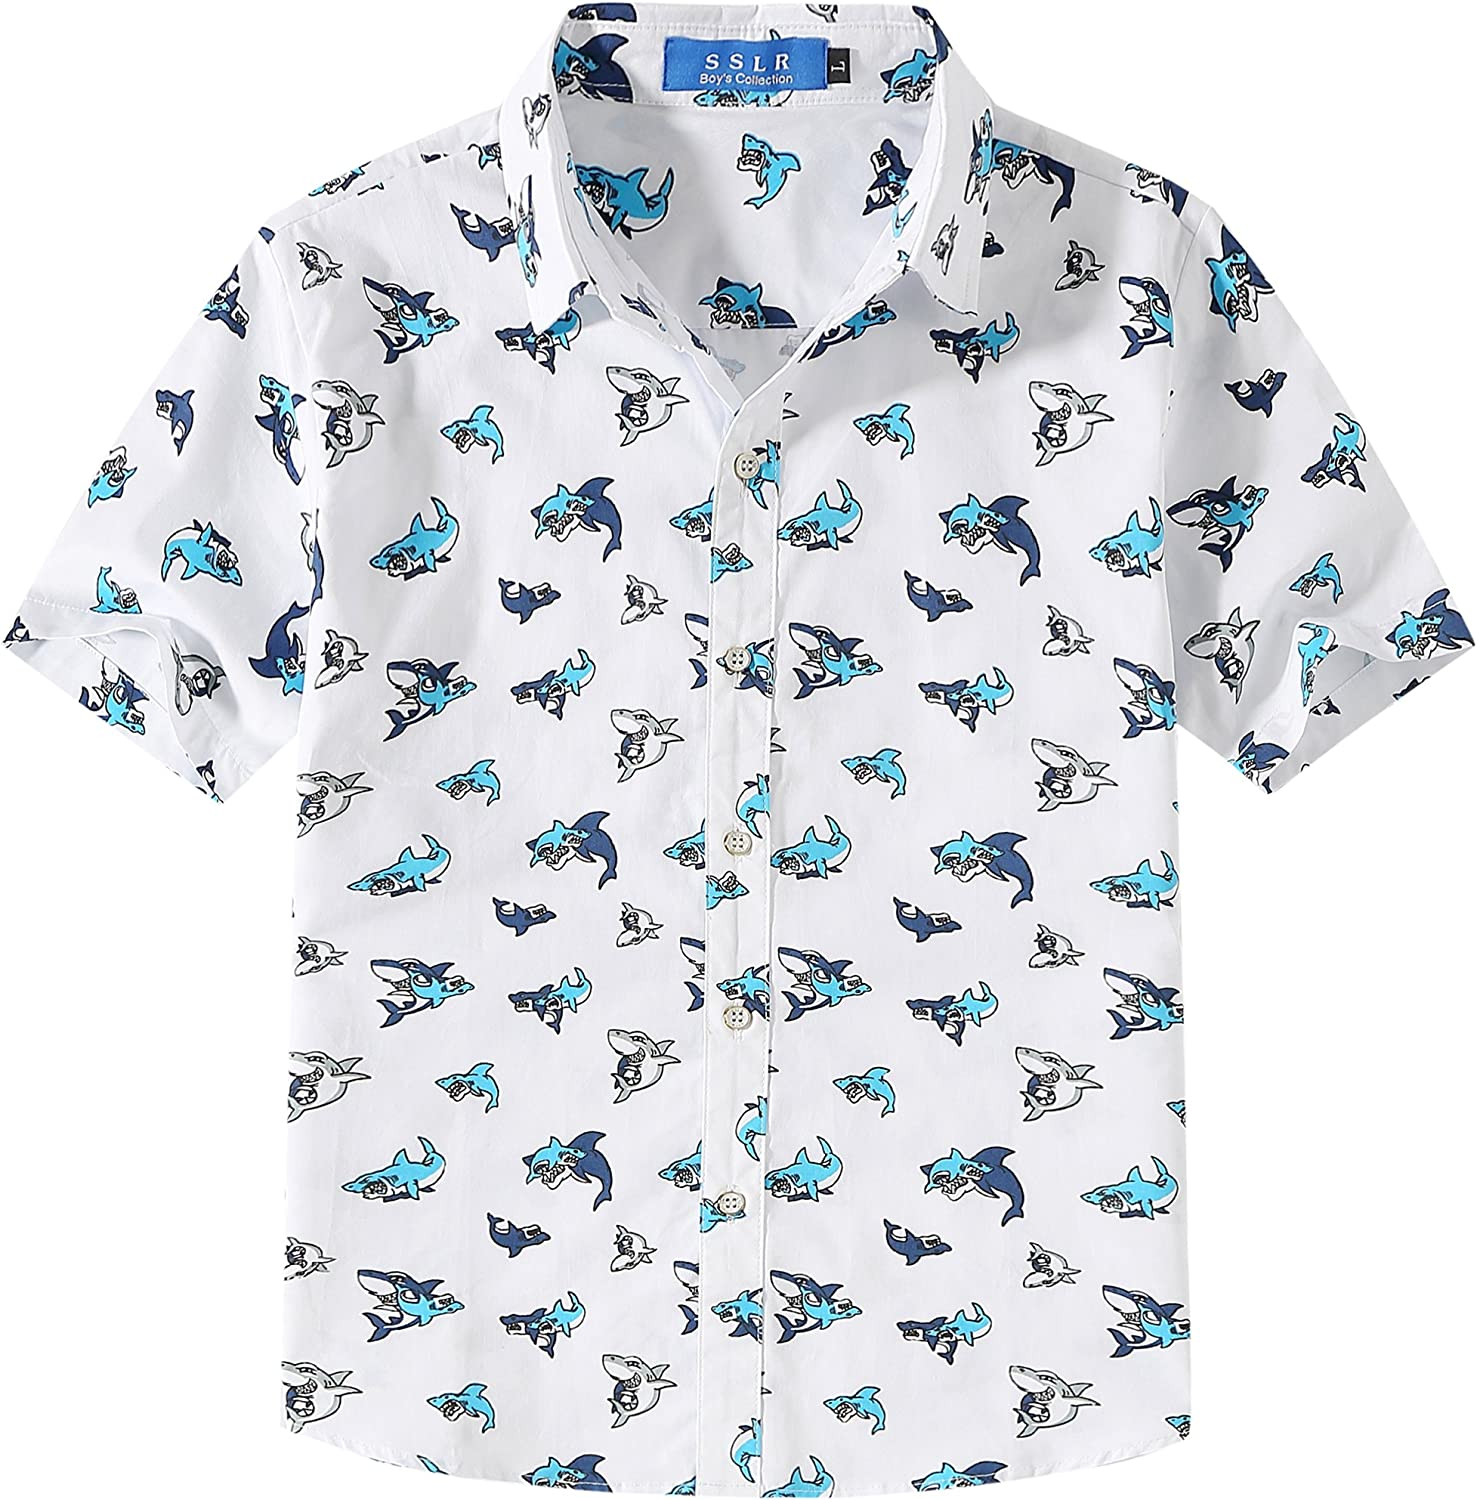 SSLR Big Boy's Shark Printed Casual Button Down Short Sleeve Shirts